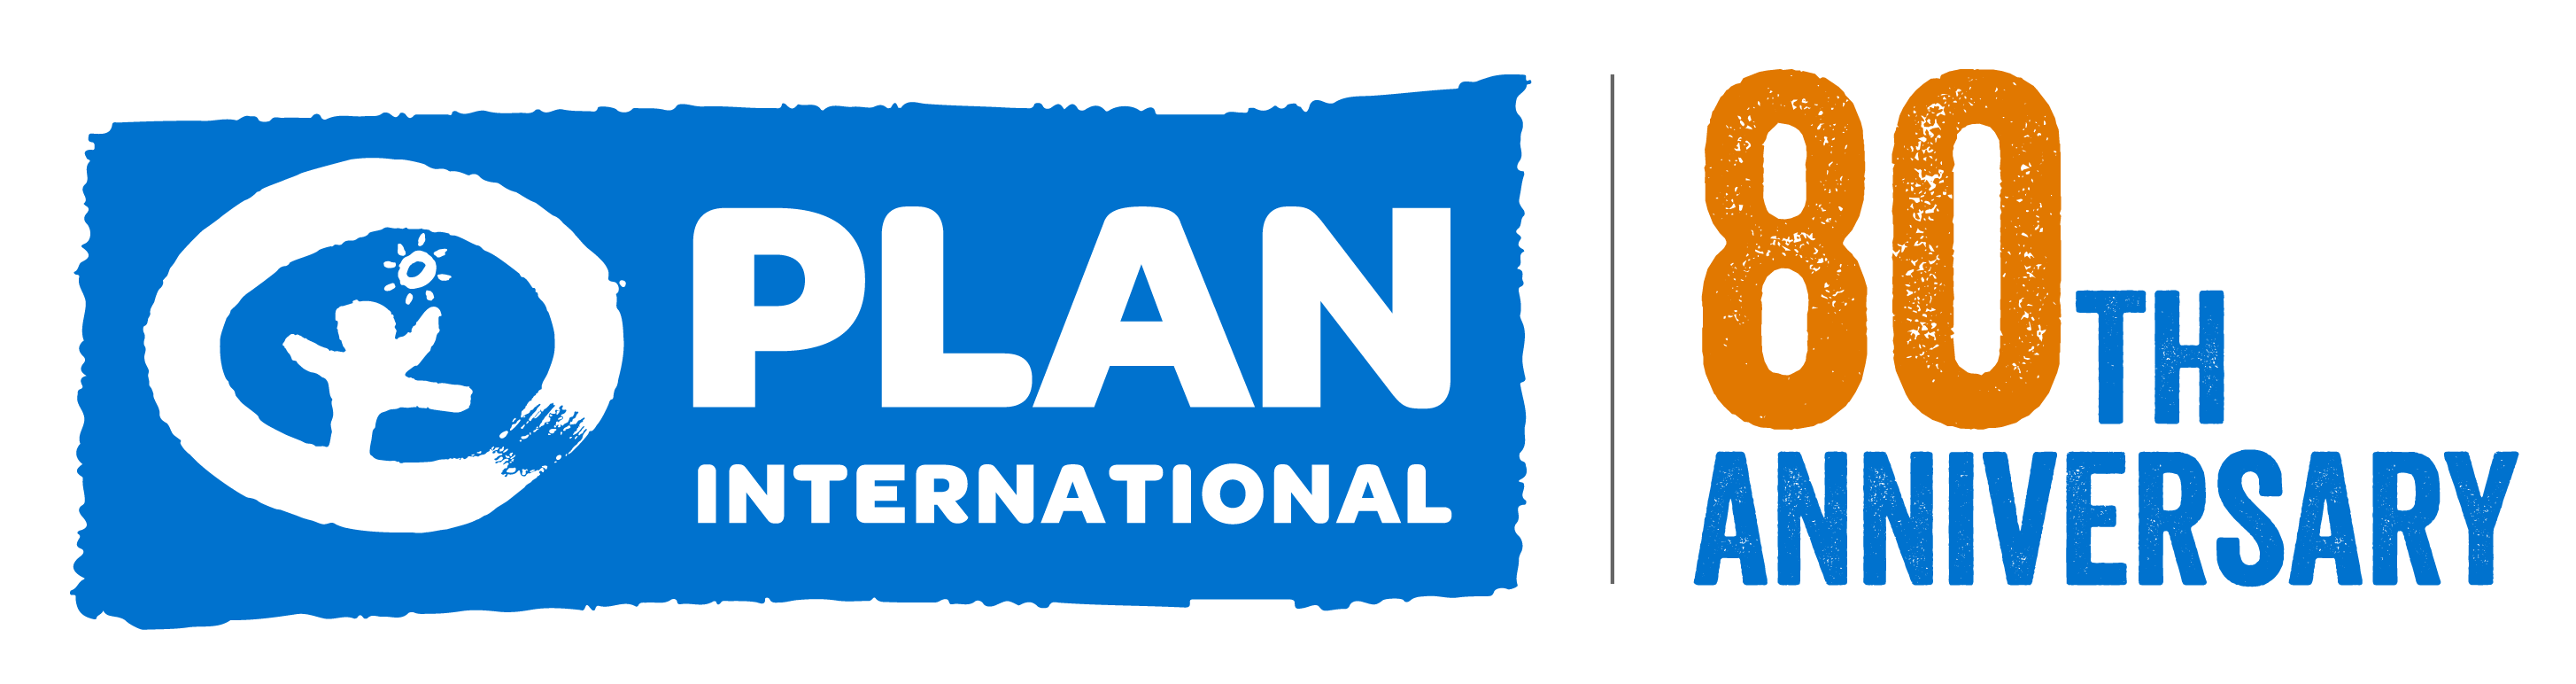 Plan International turns 80